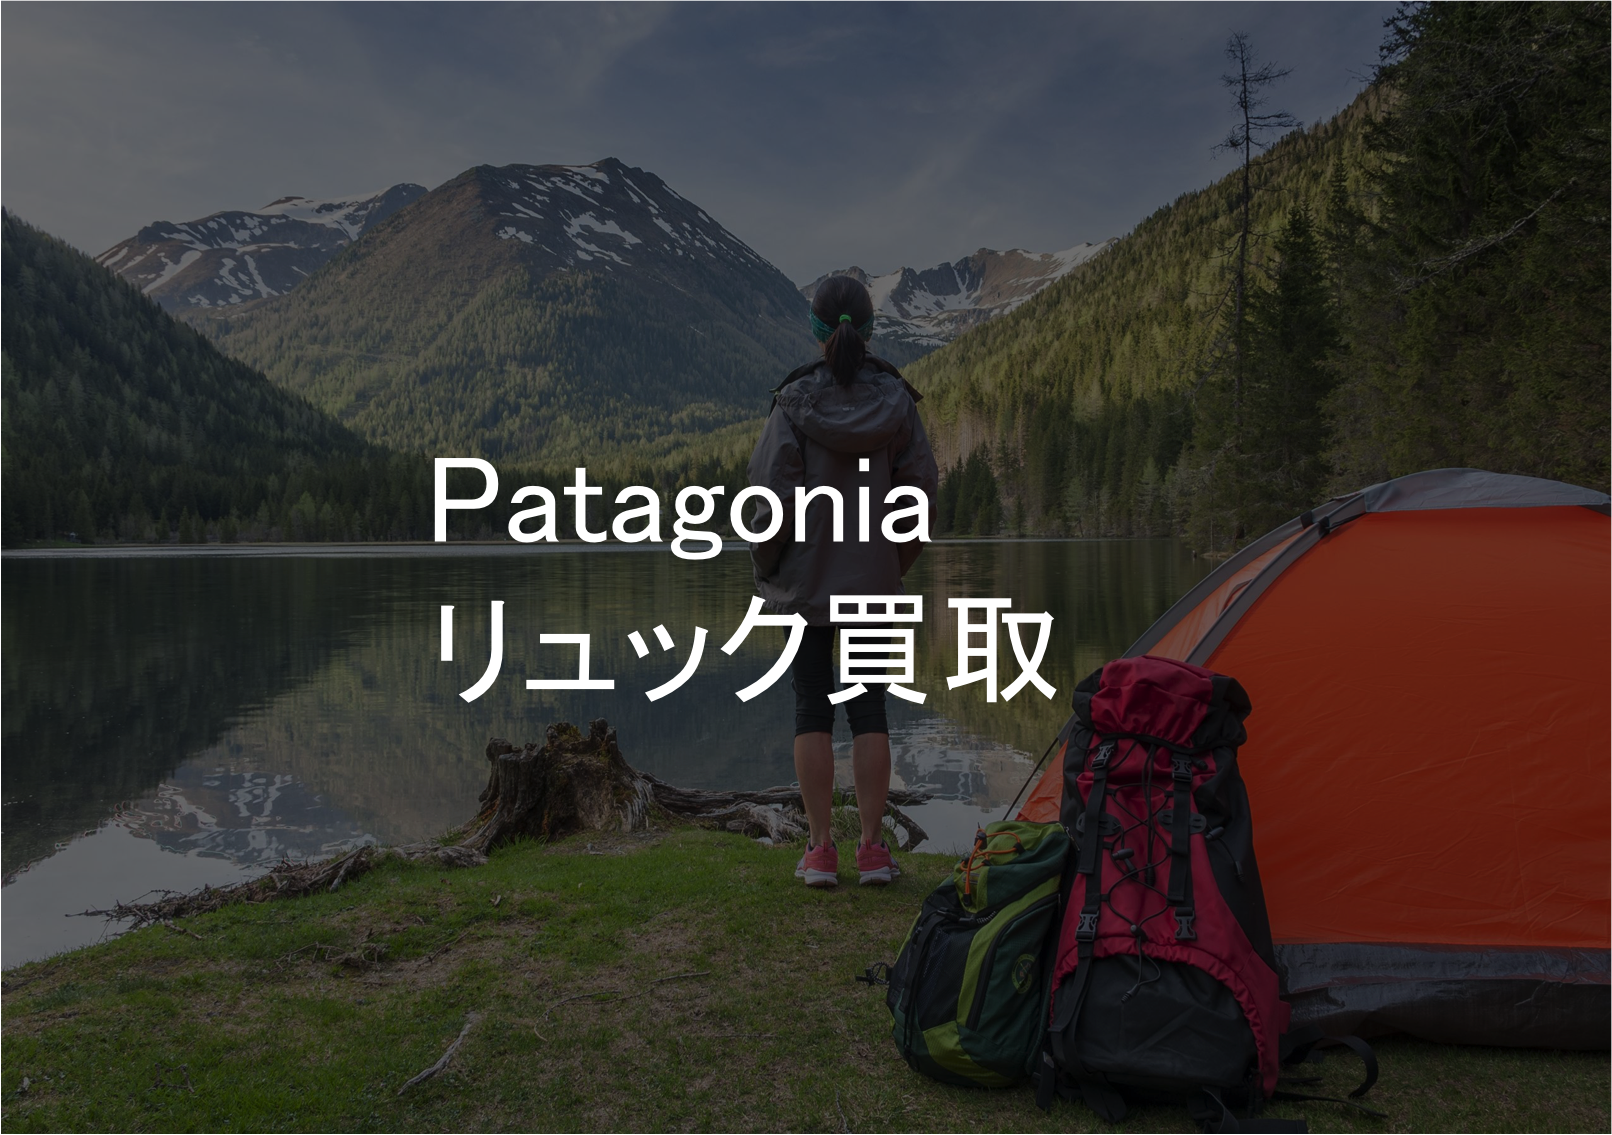 Patagonia(パタゴニア)リュックサック/バックパック買取なら!